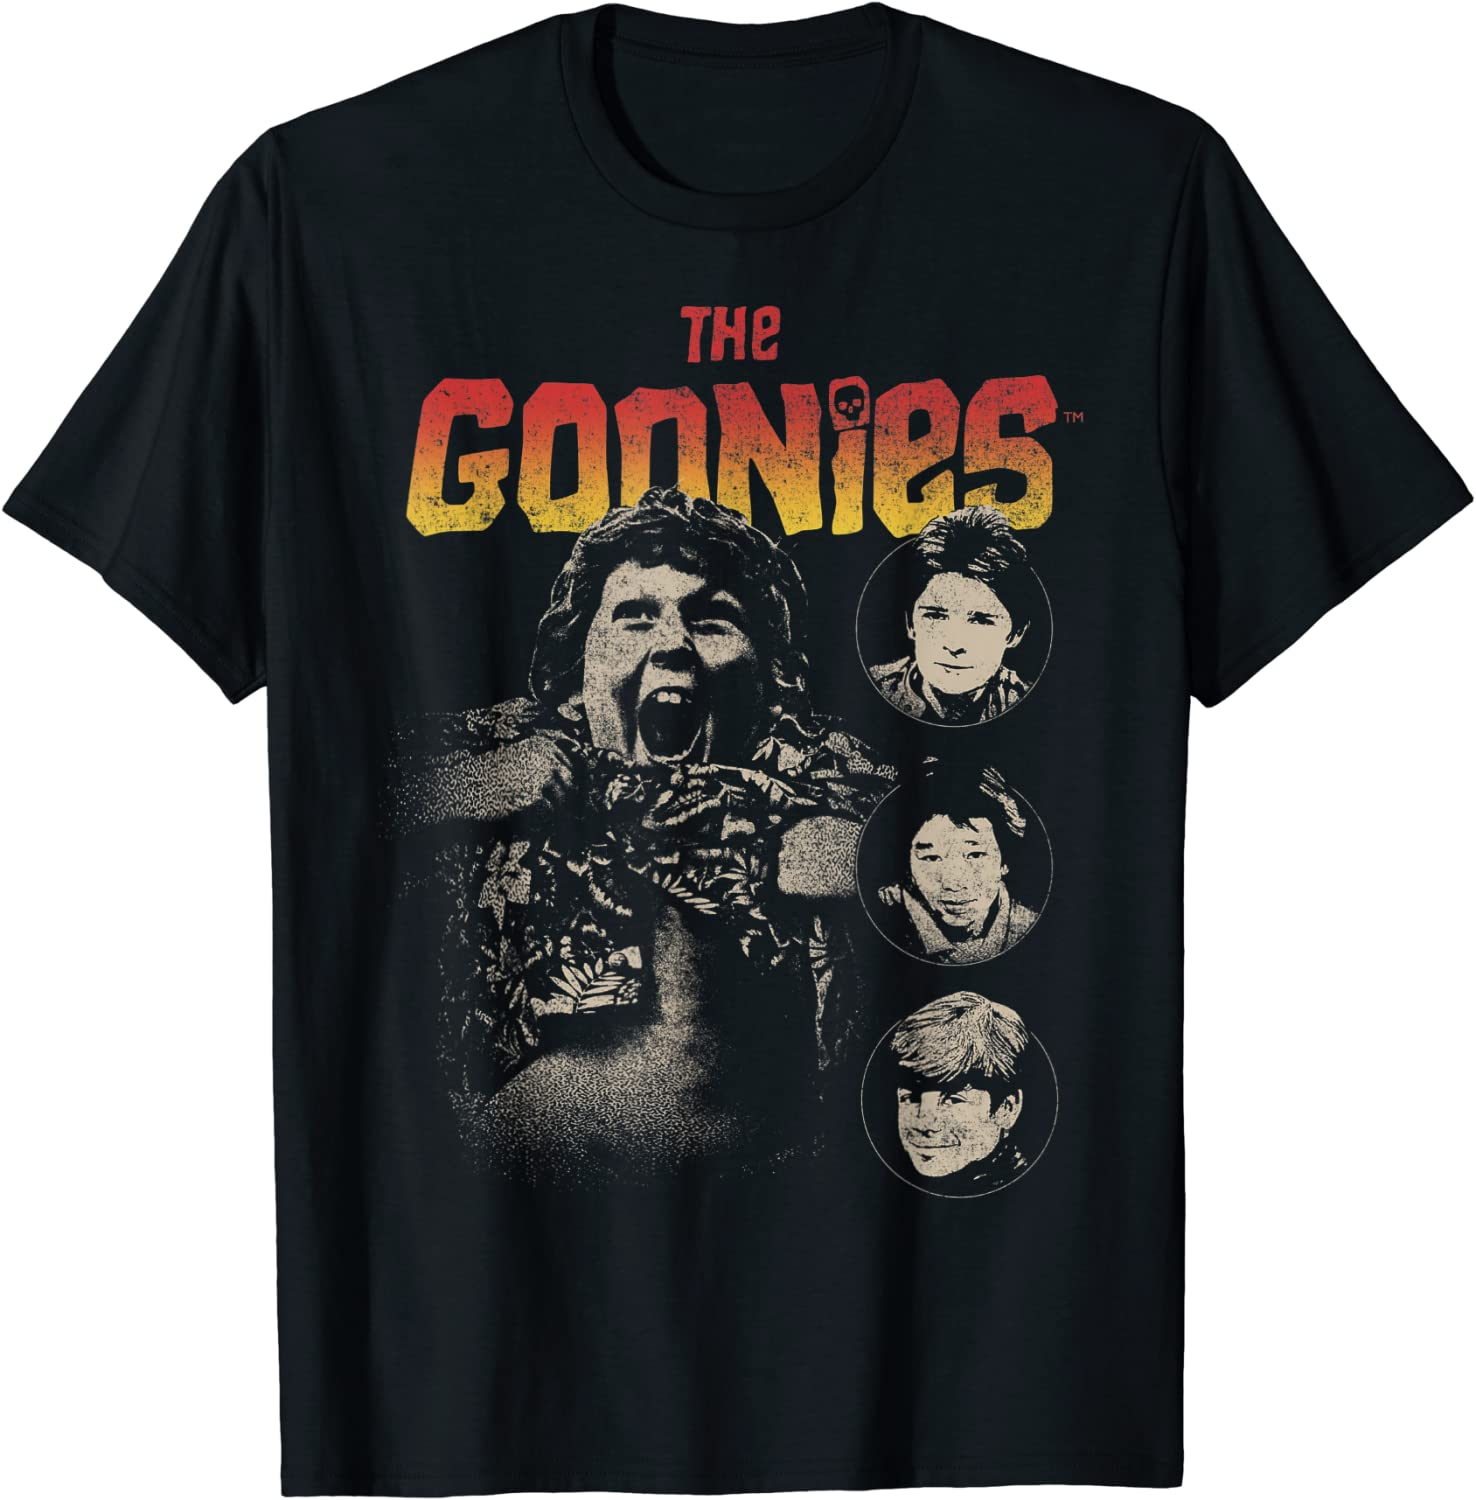 The Goonies Cast Poster T-Shirt